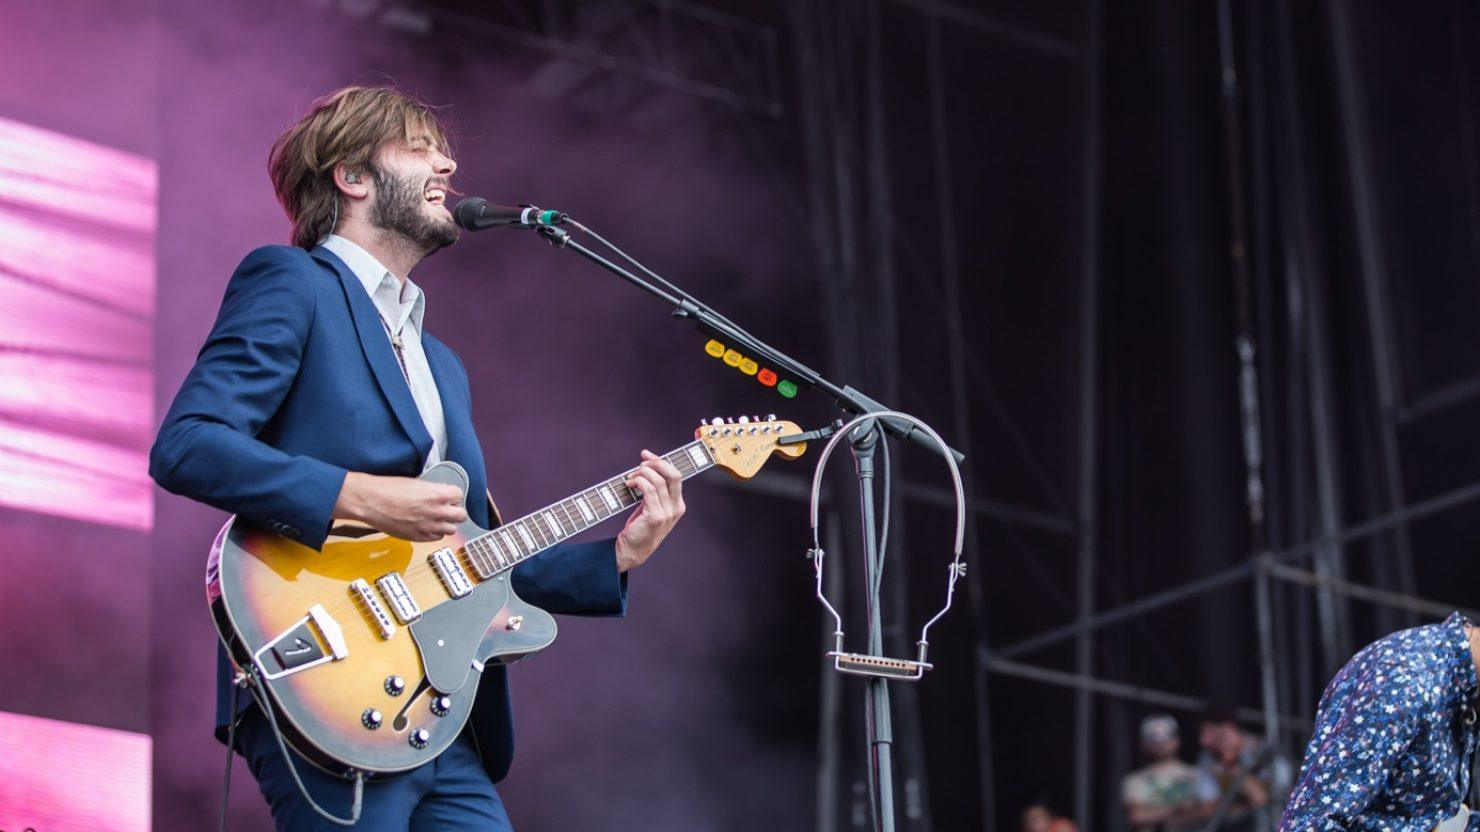 Lord Huron Tour 2020.Lord Huron Tour Dates And Concert Tickets